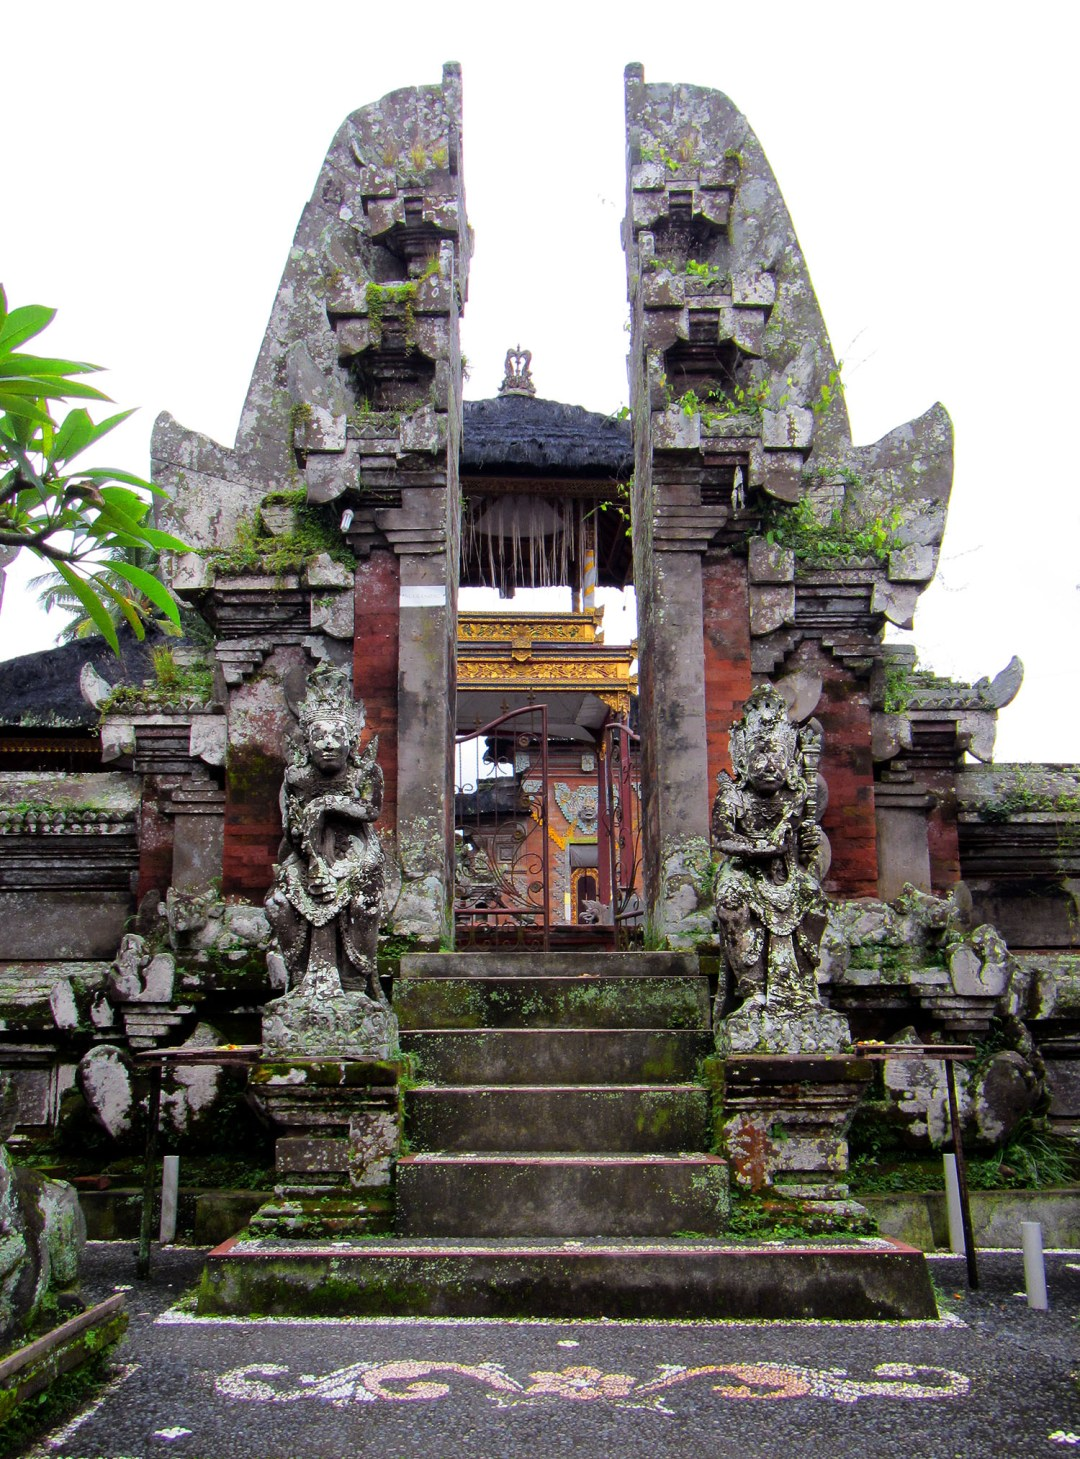 Balinese temple for boomervoice